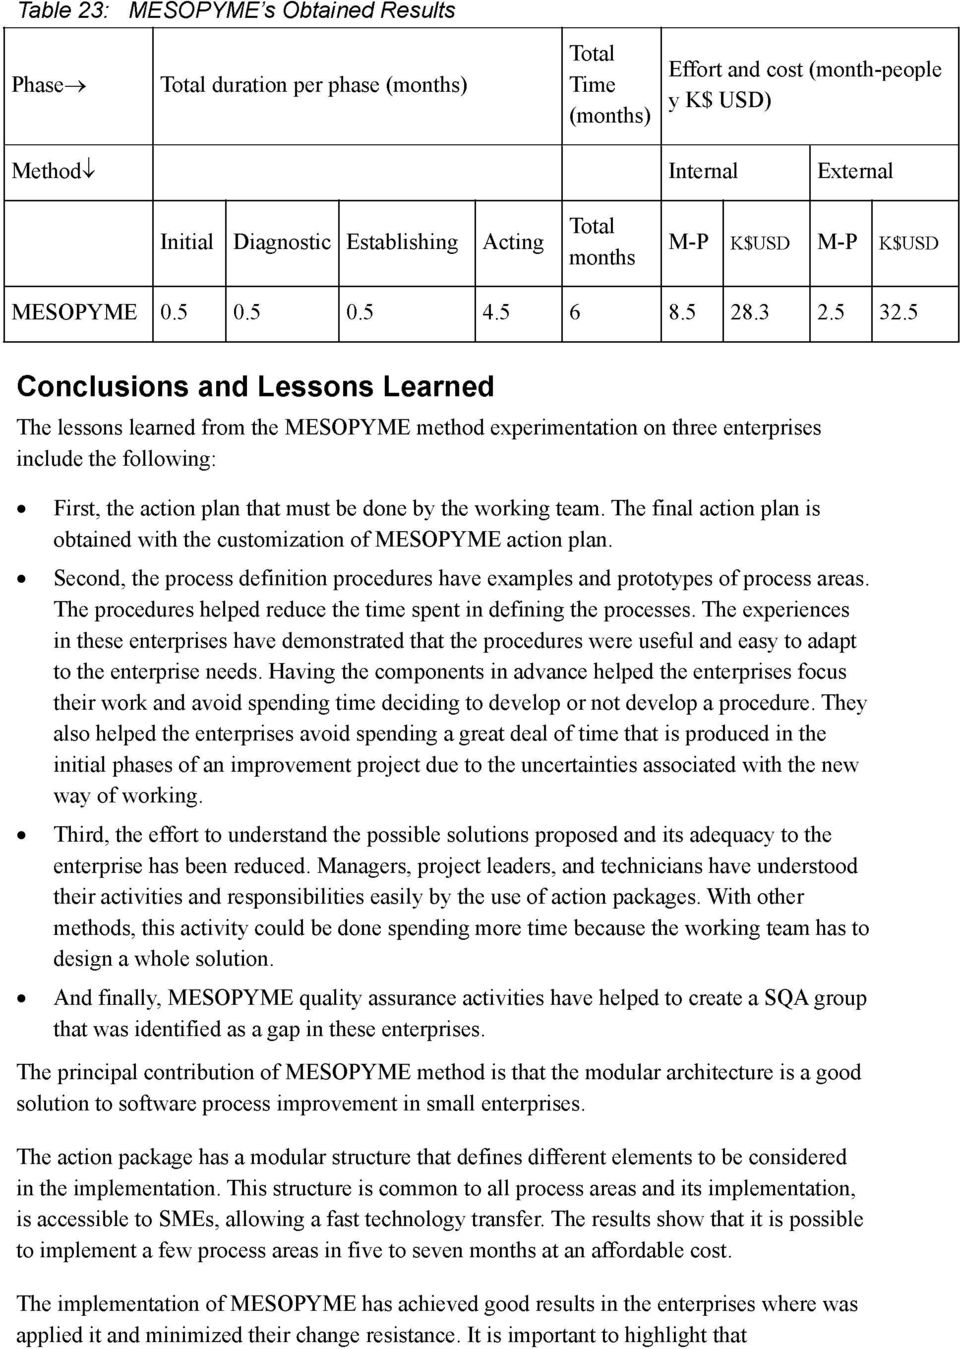 5 Conclusions and Lessons Learned The lessons learned from the MESOPYME method experimentation on three enterprises include the following: First, the action plan that must be done by the working team.